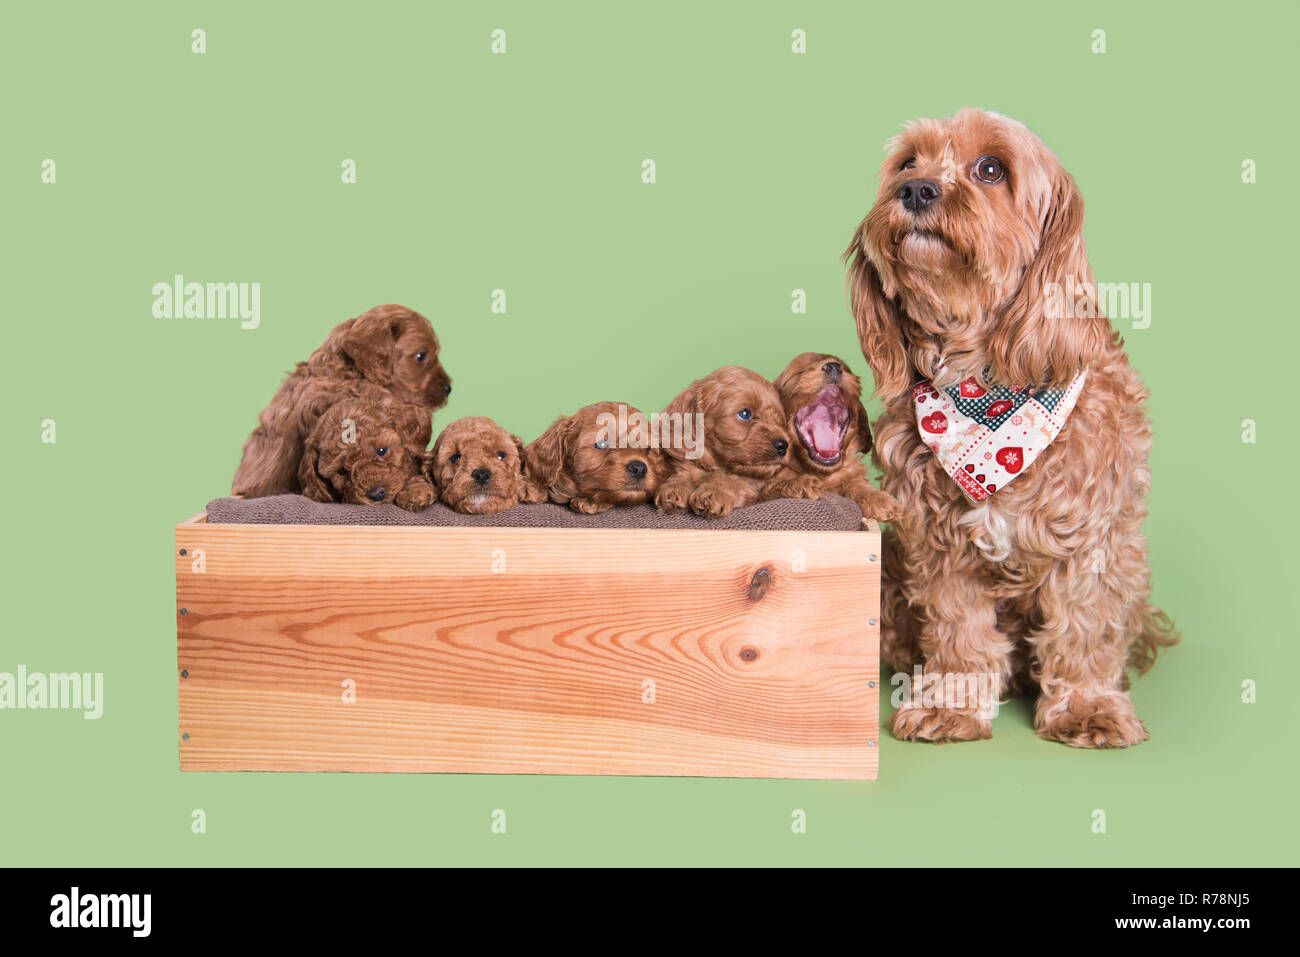 Cockapoo Puppy dog cute professional photograph - Stock Image